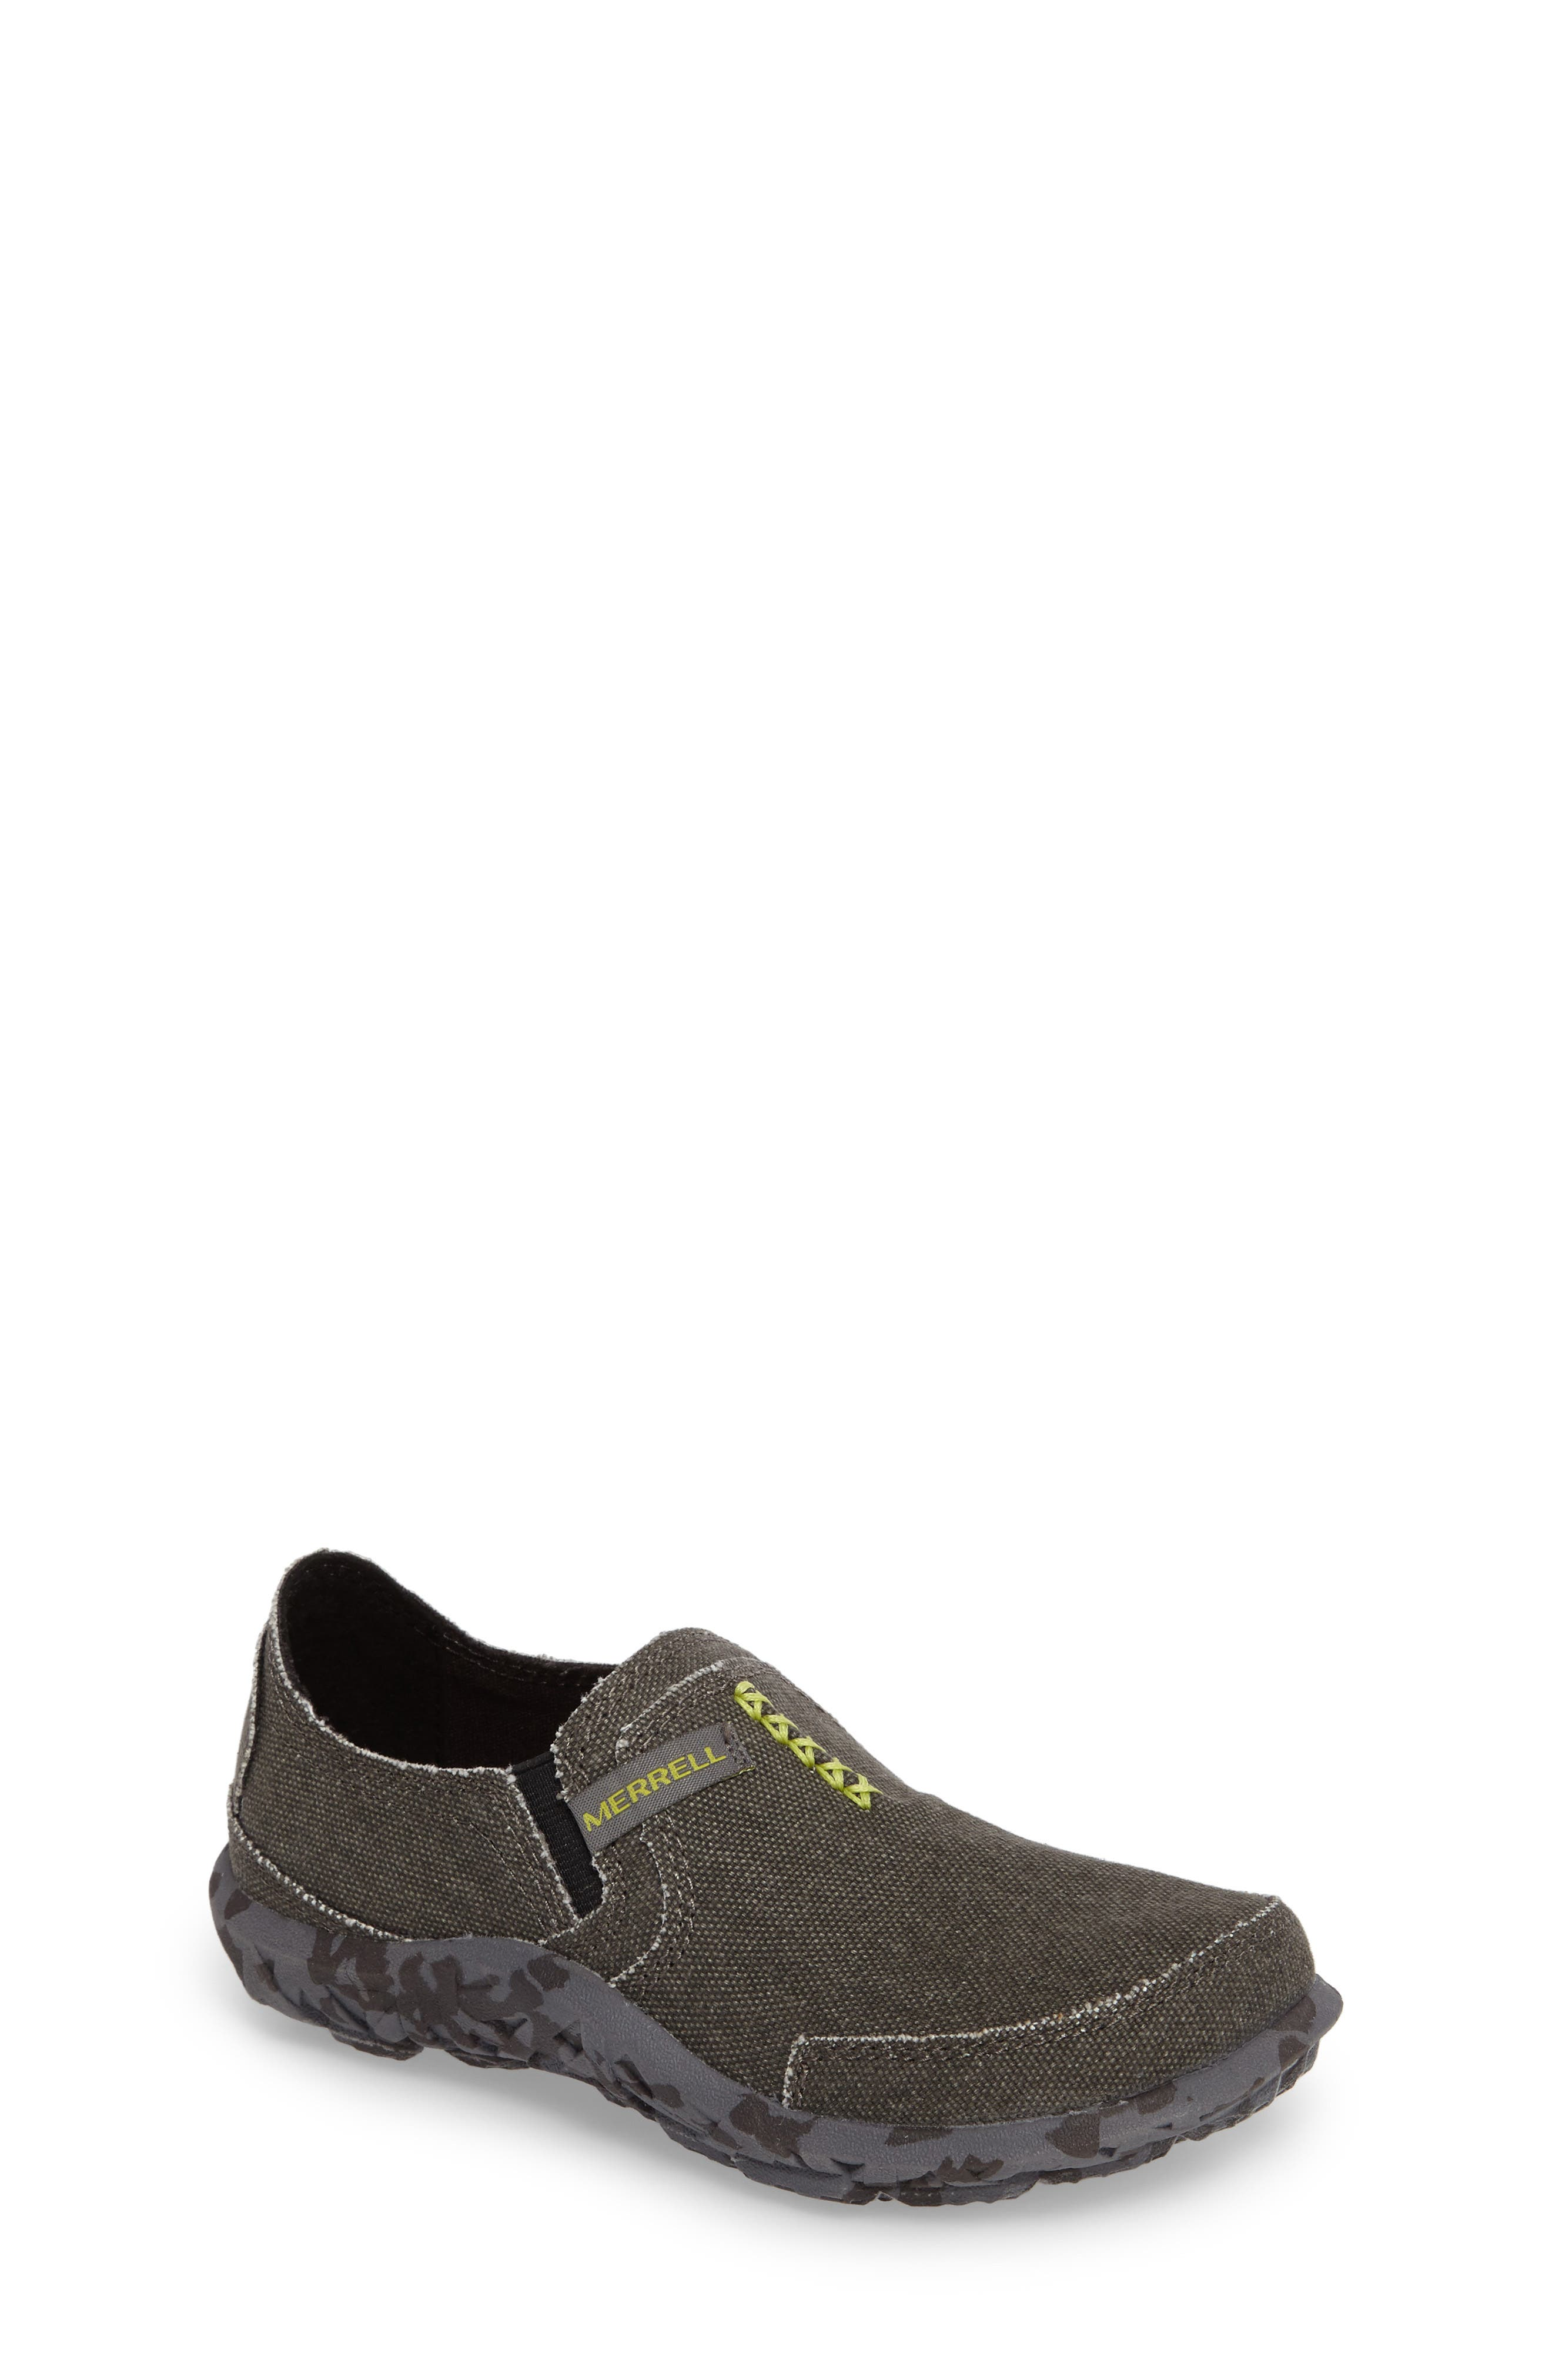 Merrell Slip-On (Toddler, Little Kid & Big Kid)